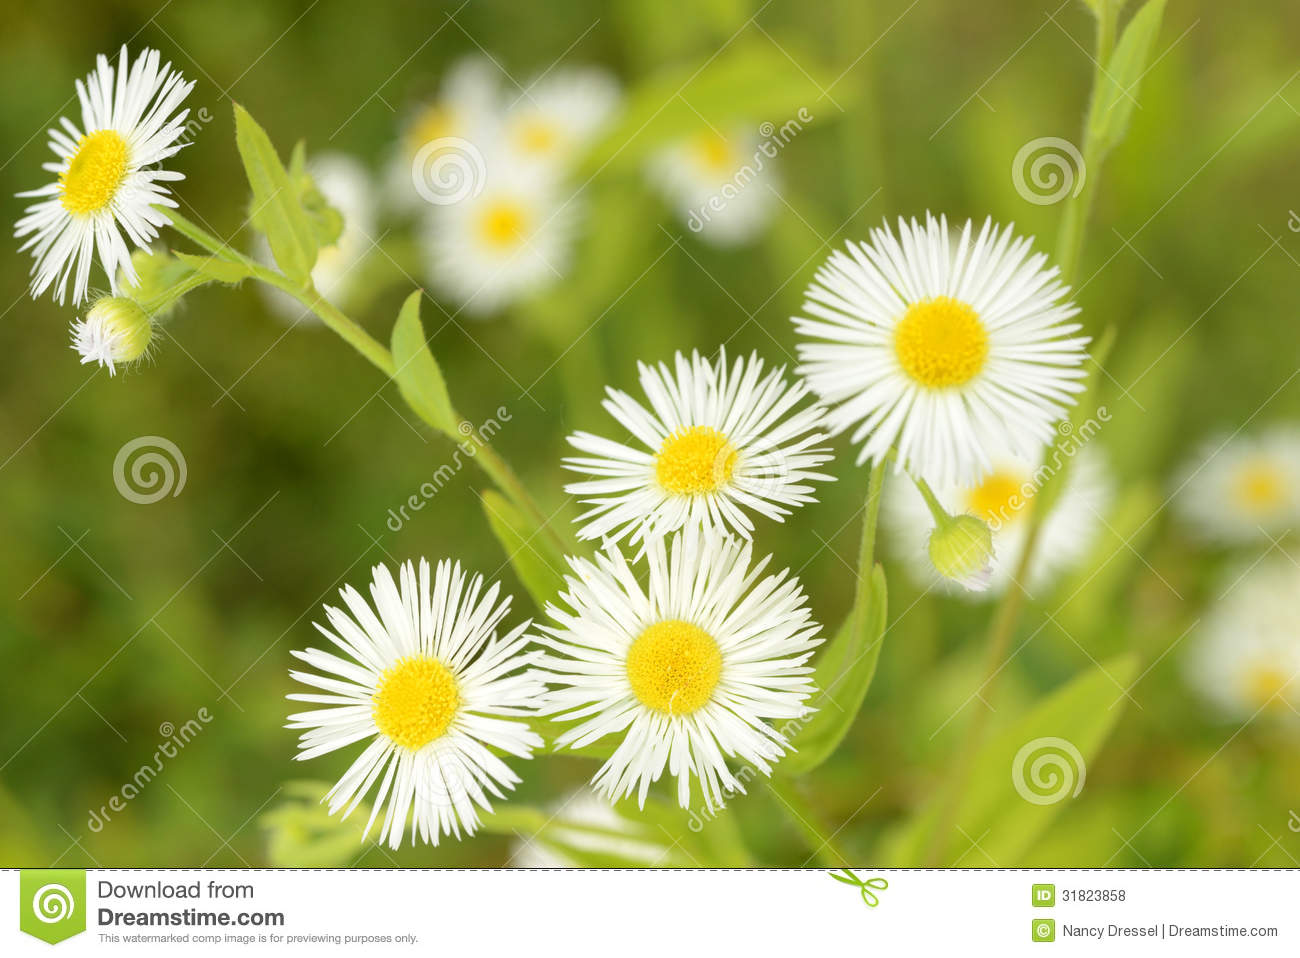 Little daisy flowers in nature stock photo image of daisy bloom little daisy flowers in nature izmirmasajfo